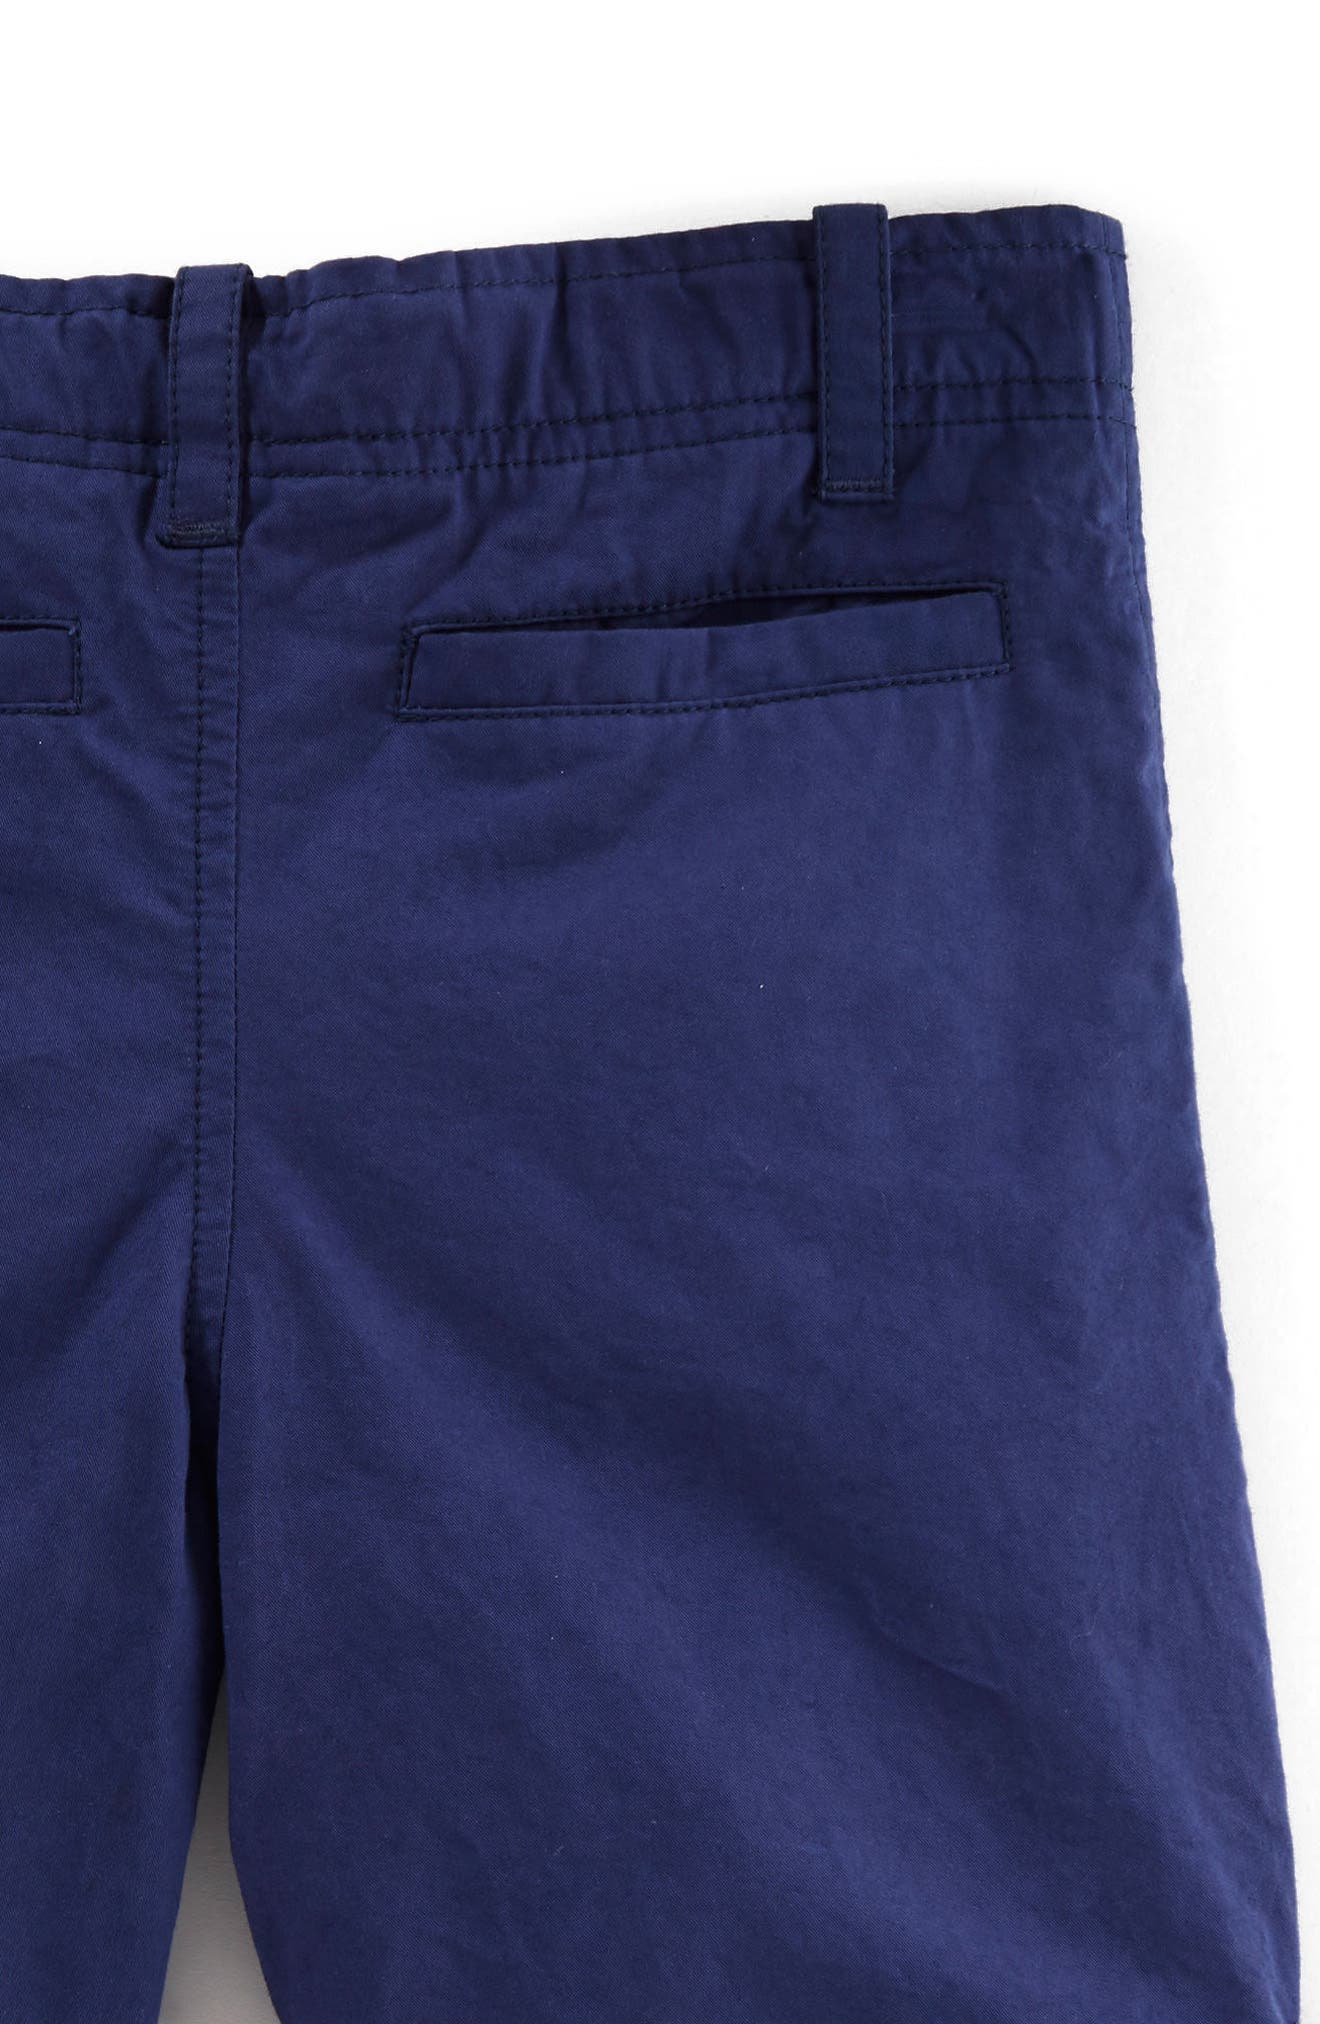 Hudson Shorts,                             Alternate thumbnail 2, color,                             400